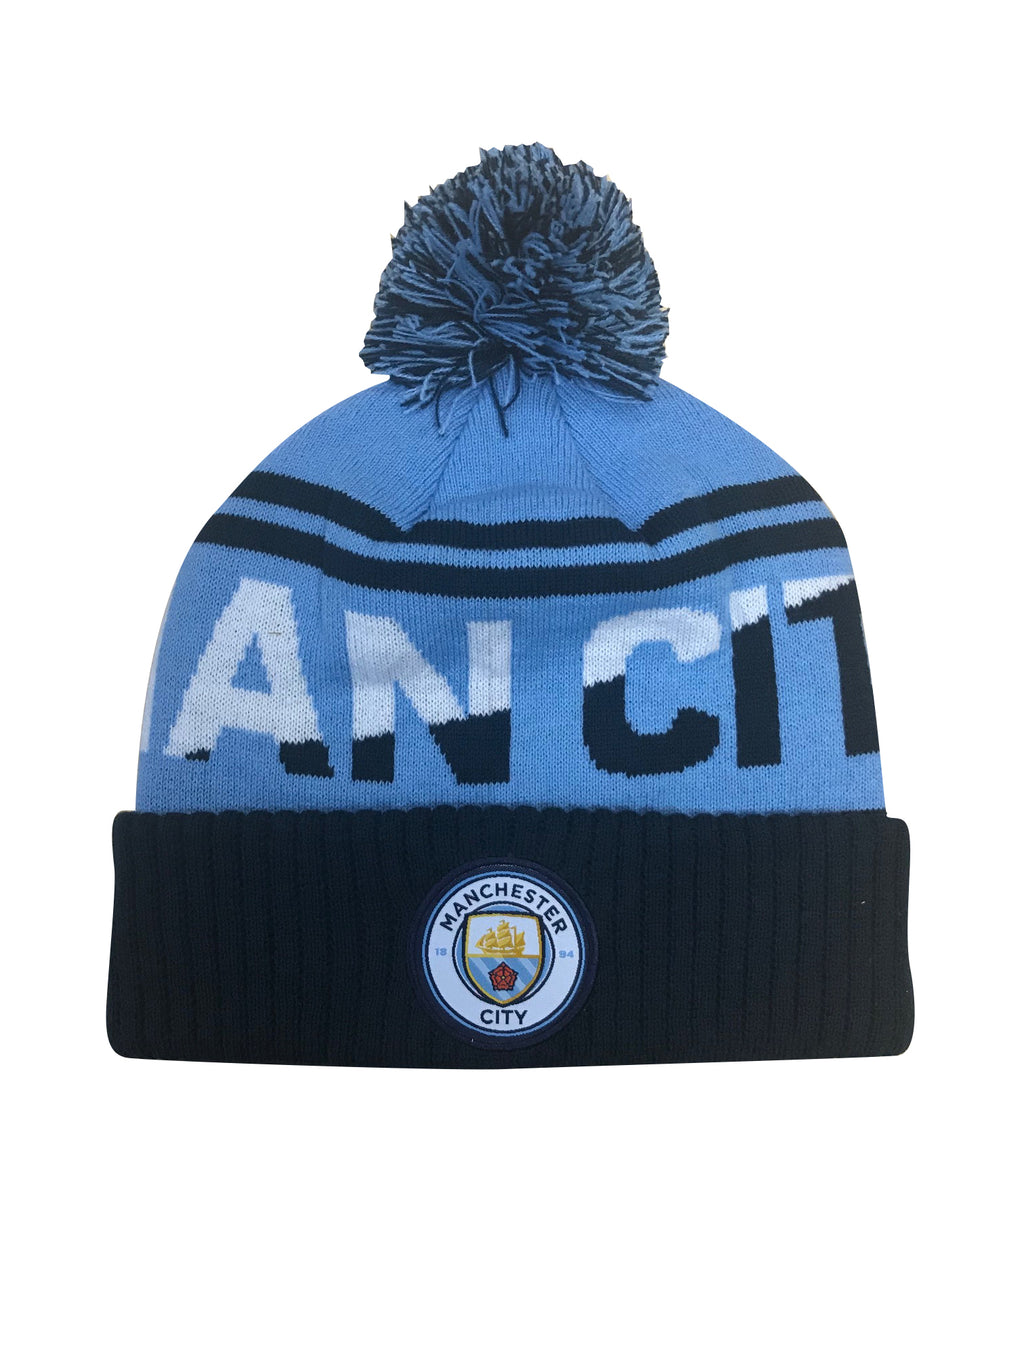 Man City Solid Cuff Pom Beanie